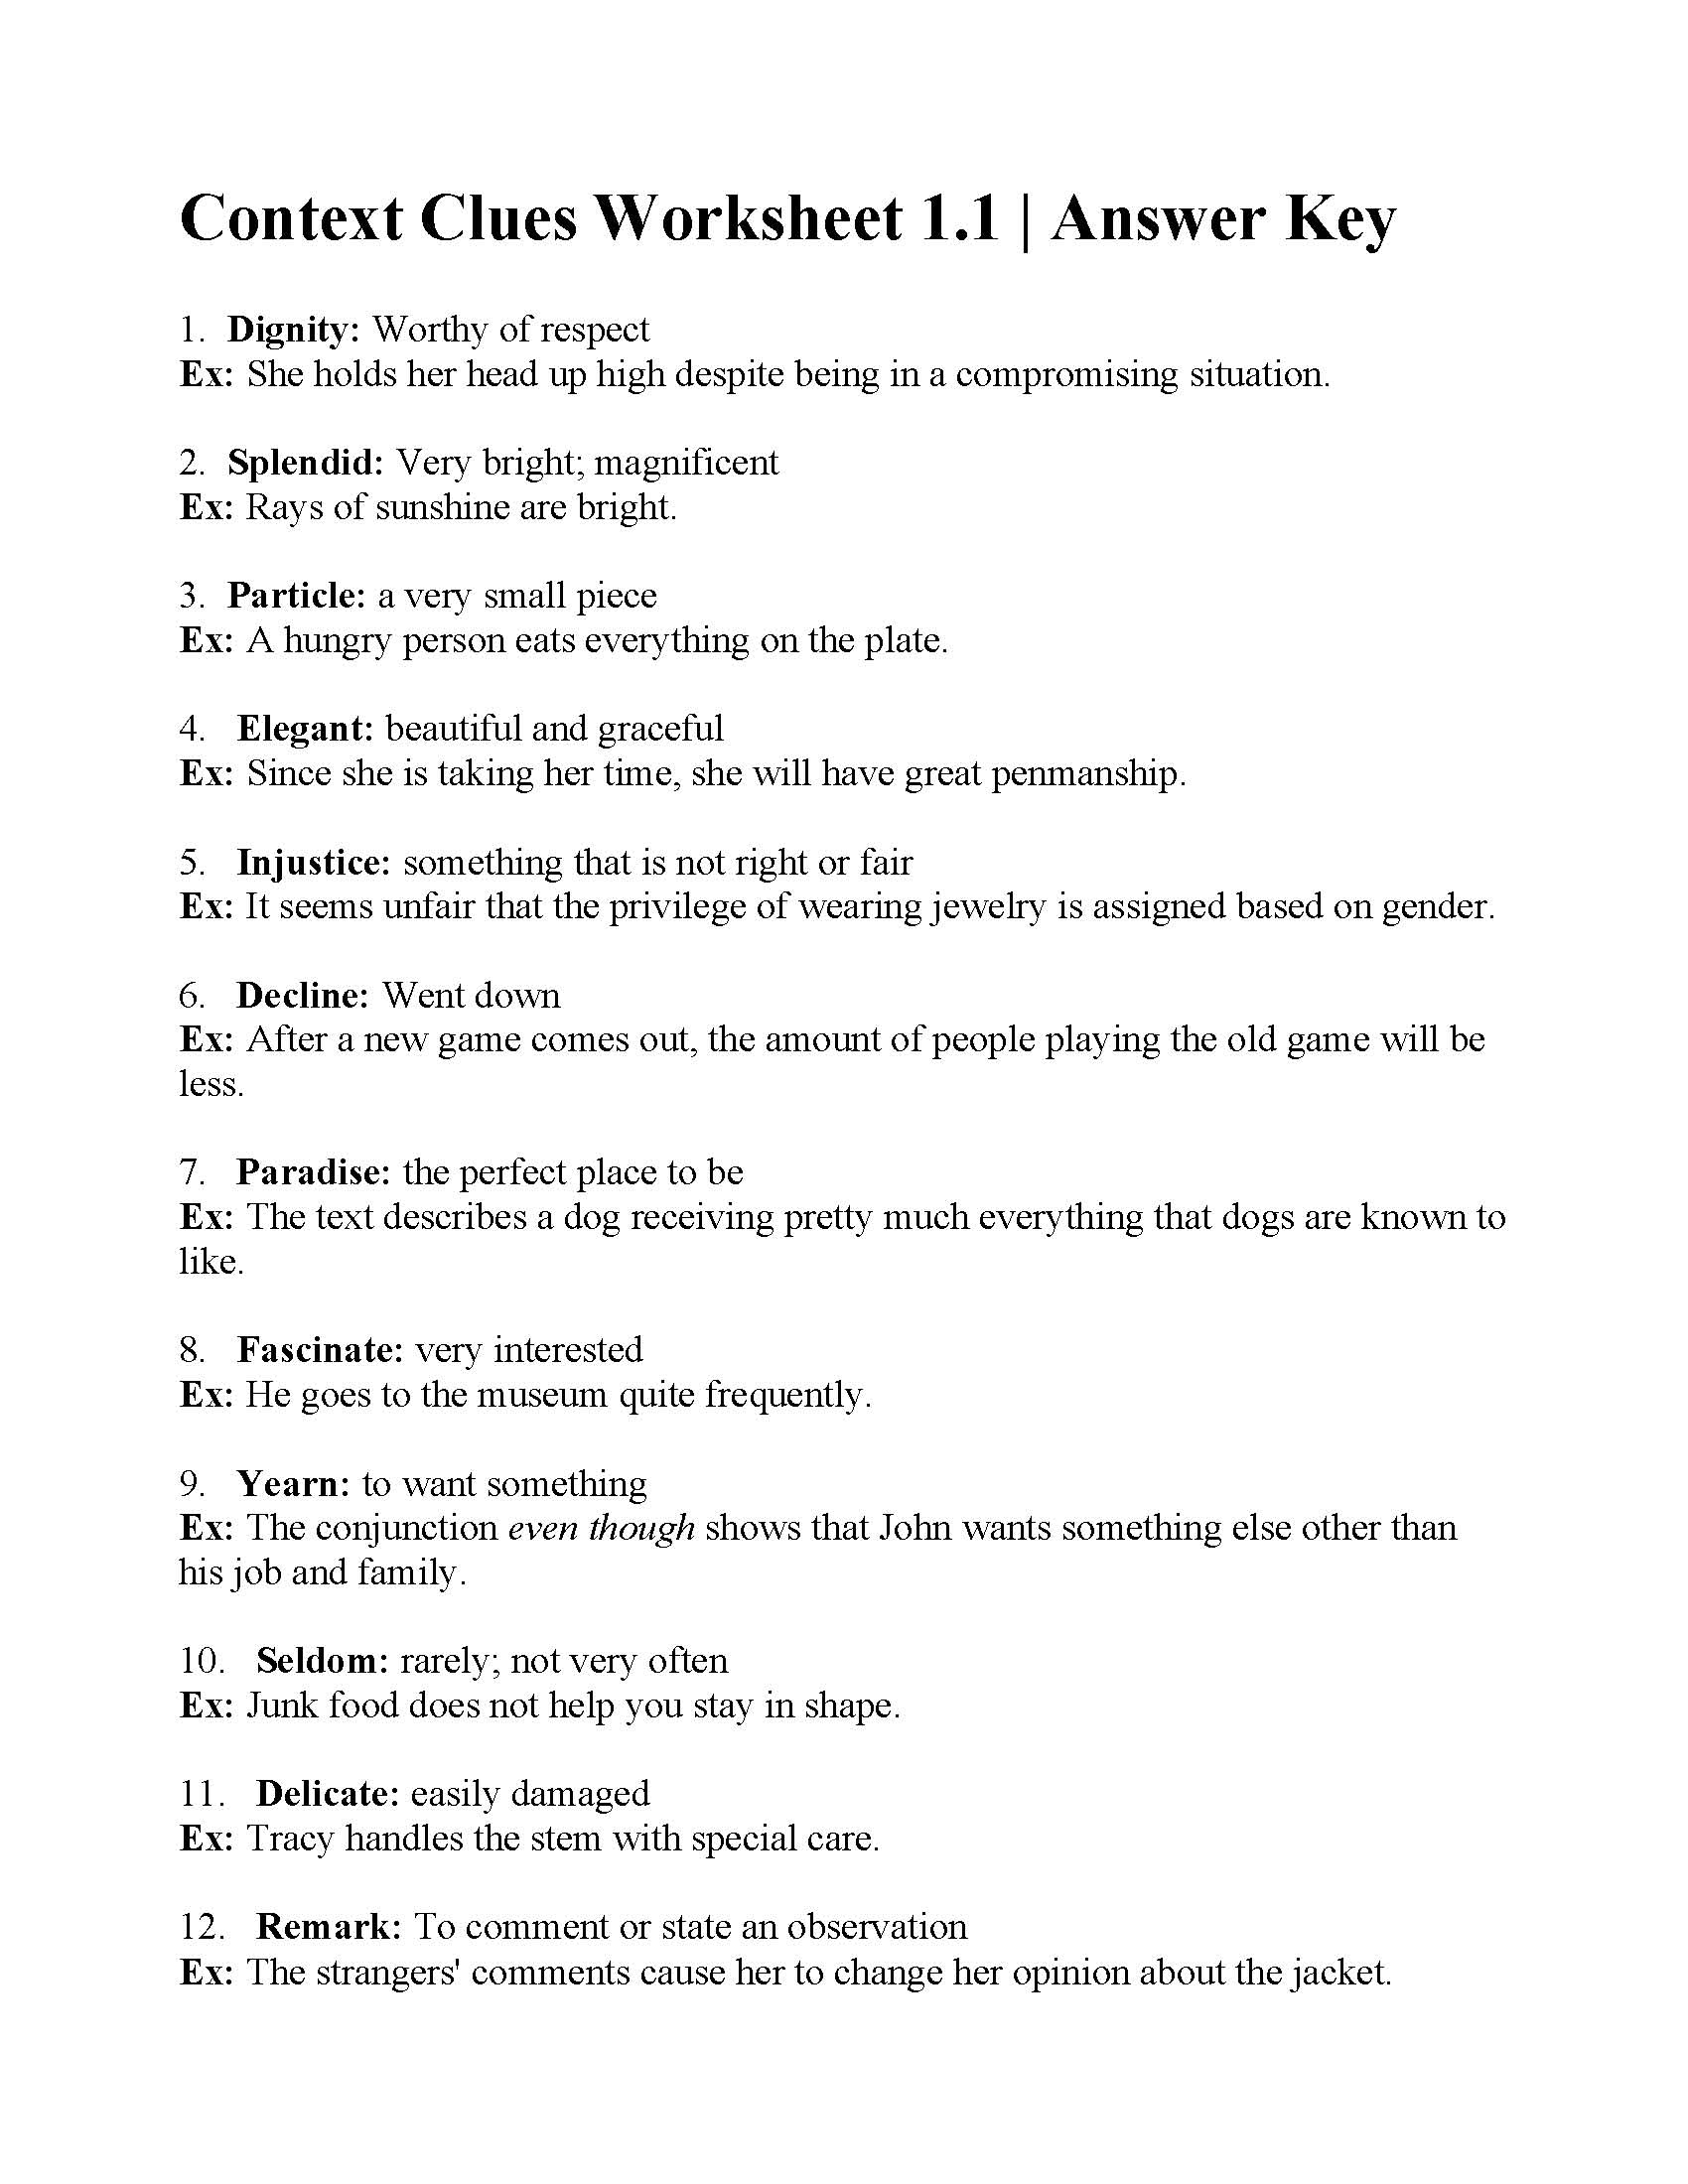 Context Clues Worksheet 1.1 | Answers